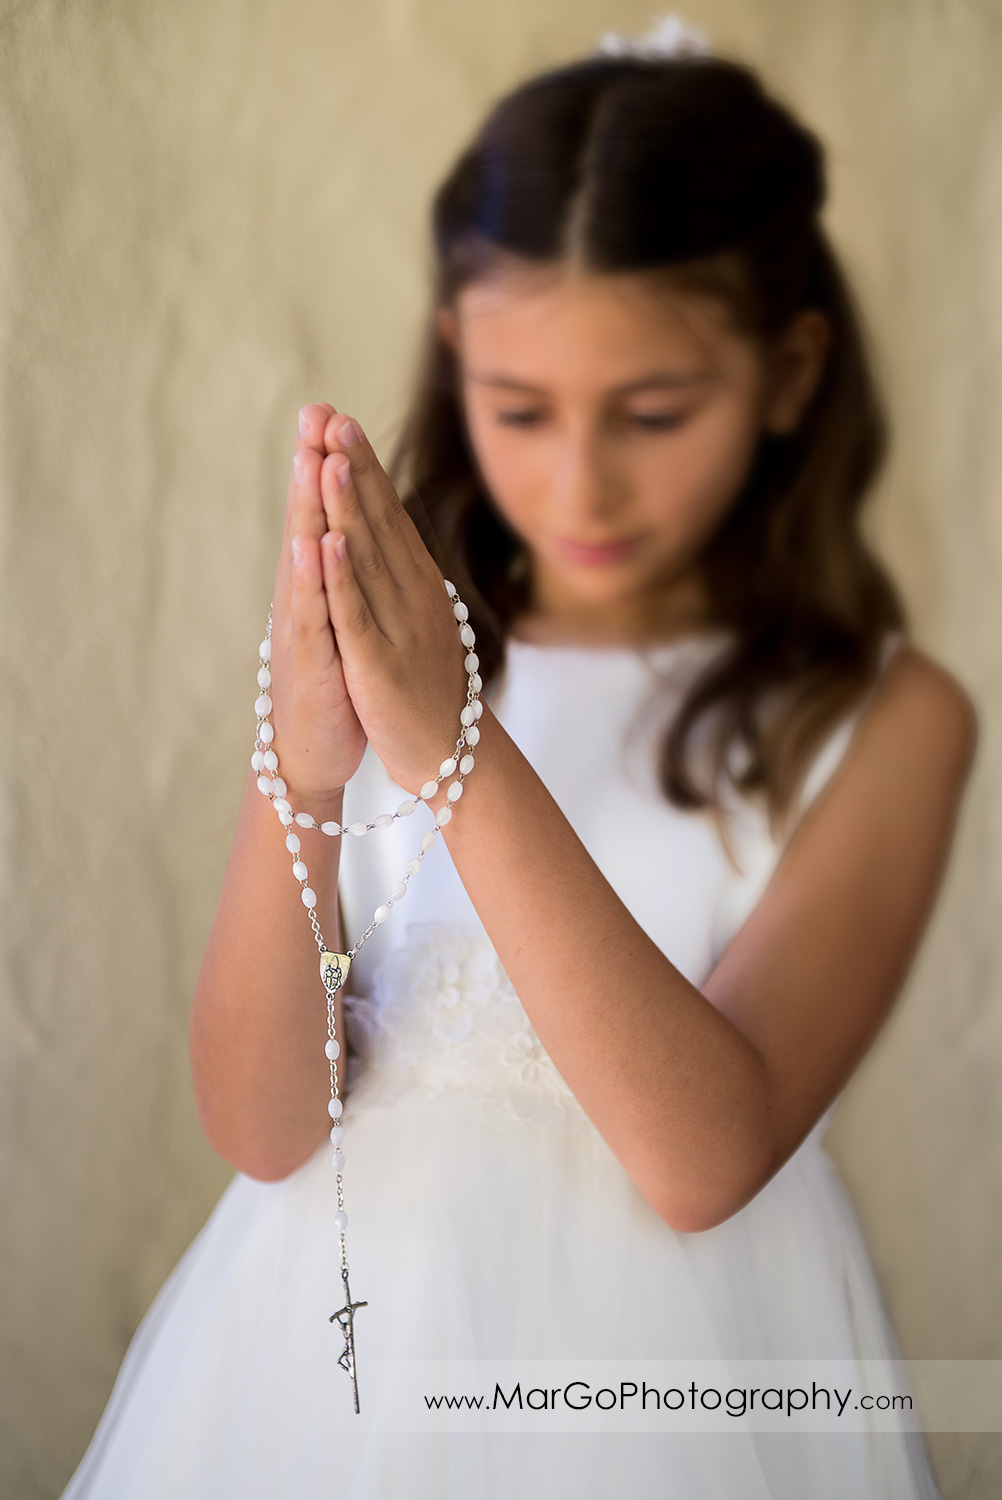 first communion girl in white dress with rosary in folded hands at Cafe Wisteria in Menlo Park